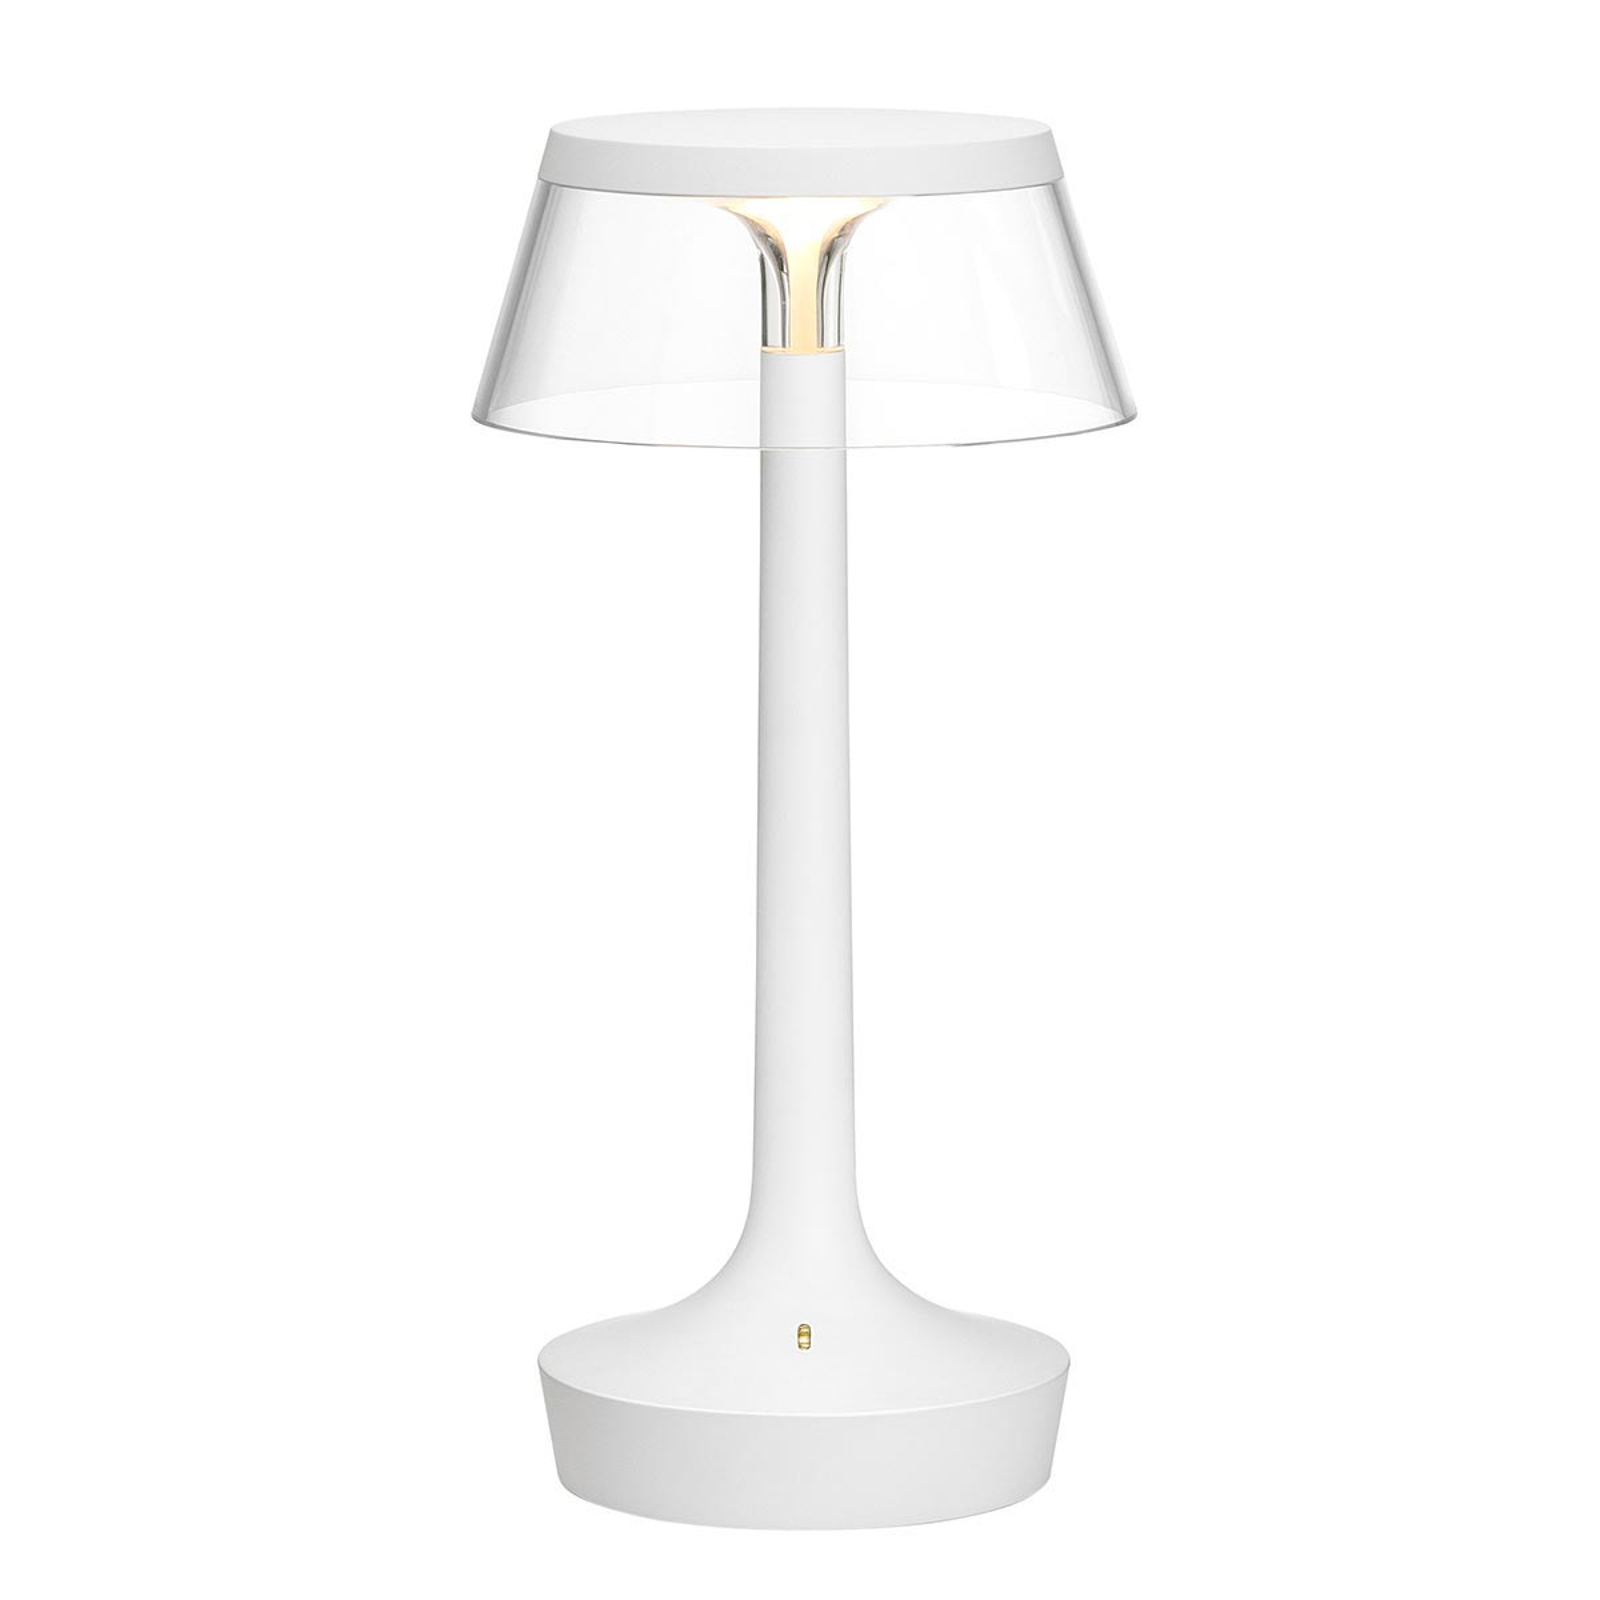 Laddningsbar LED bordslampa Bon Jour unplugged | Lamp24.se